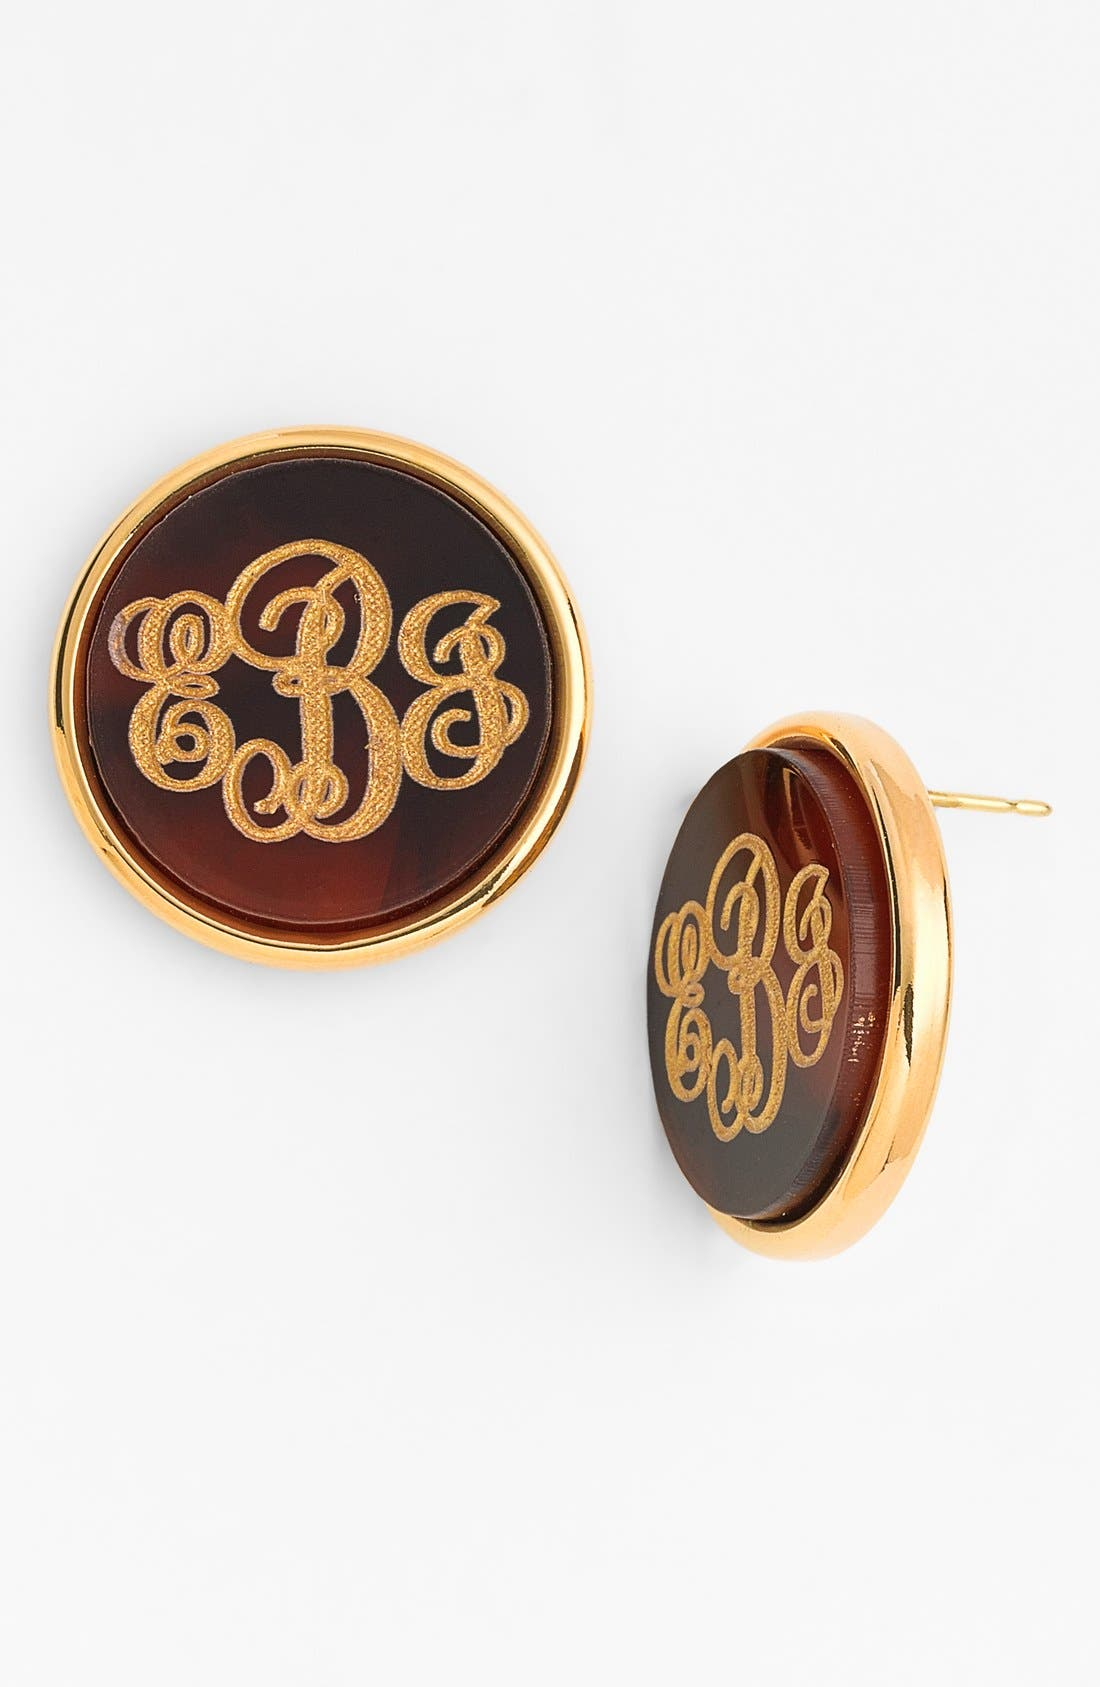 'Vineyard' Personalized Monogram Stud Earrings,                             Main thumbnail 1, color,                             TORTOISE